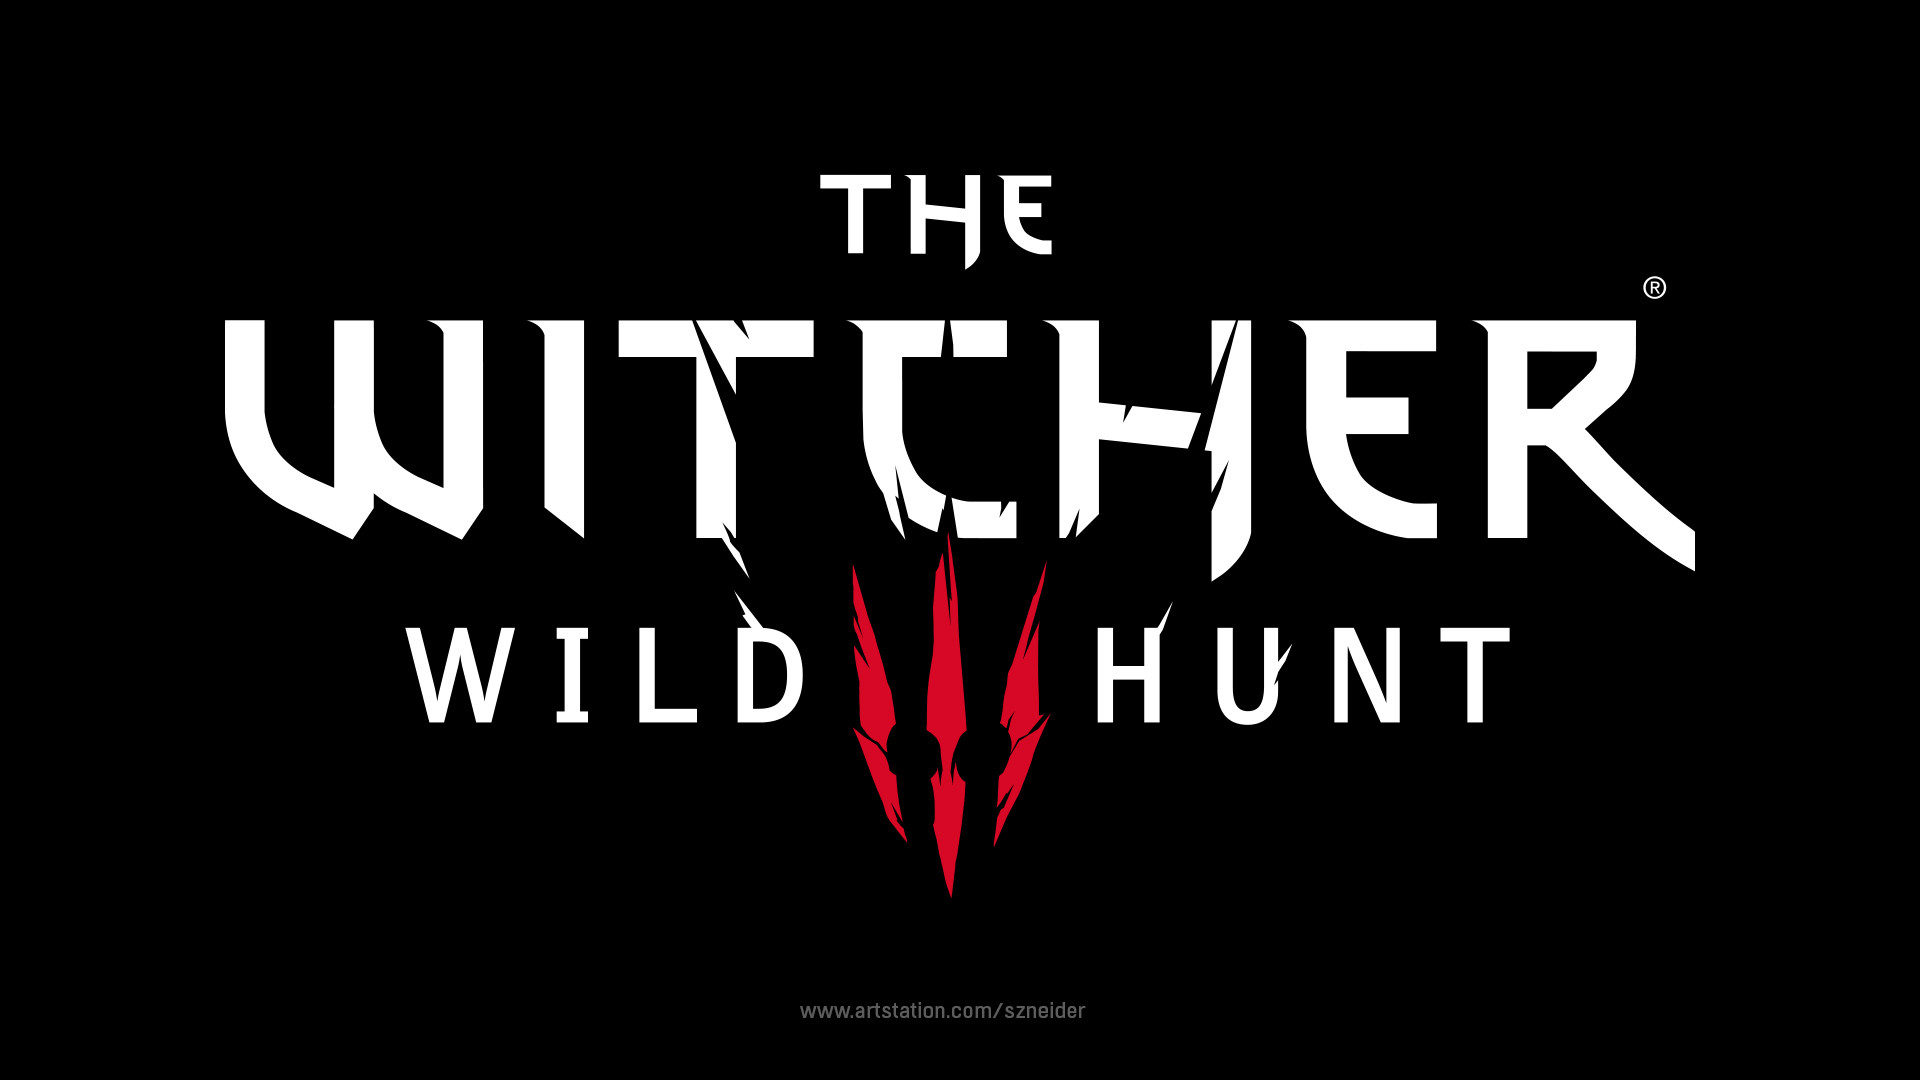 Benedykt Szneider - Logo Design - The Witcher 3: Wild Hunt